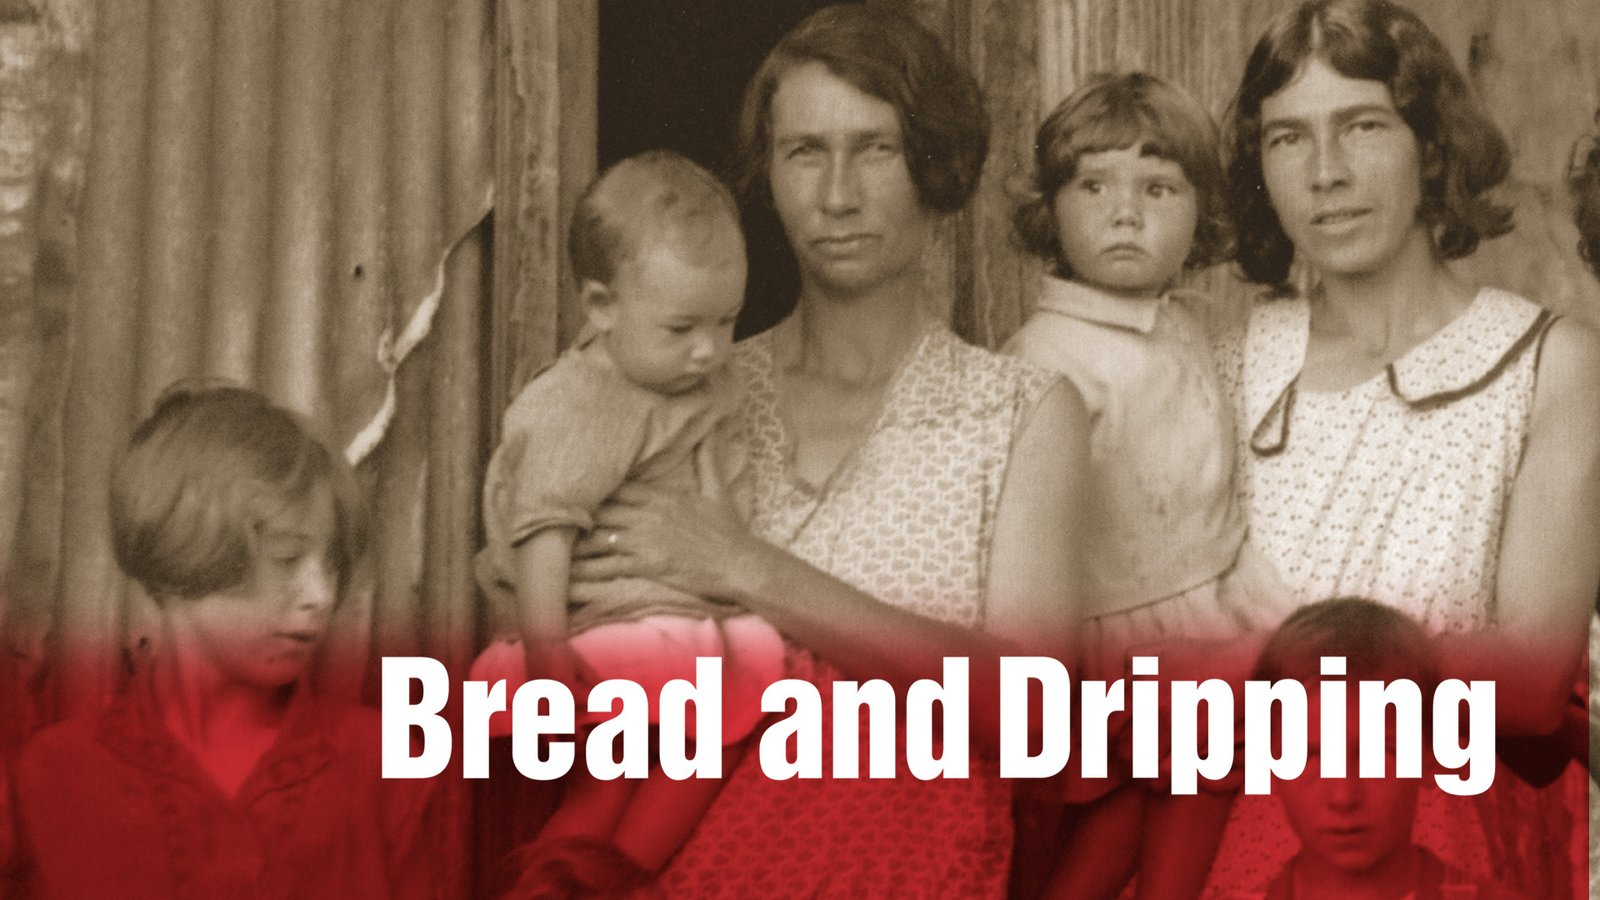 Bread and Dripping